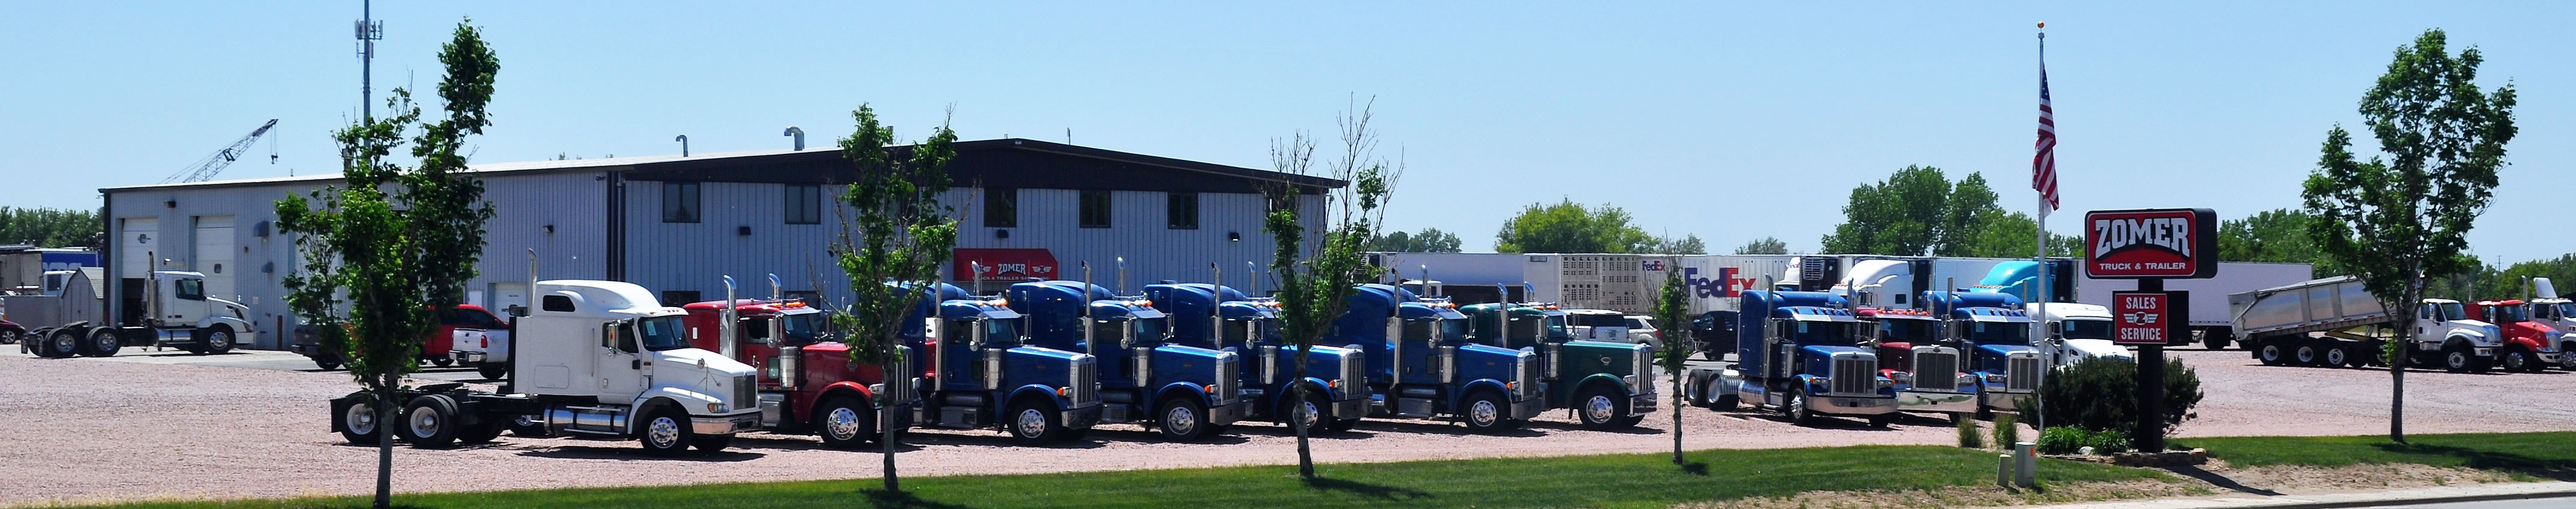 zomer Truck & Trailer Sales Sioux Falls, SD